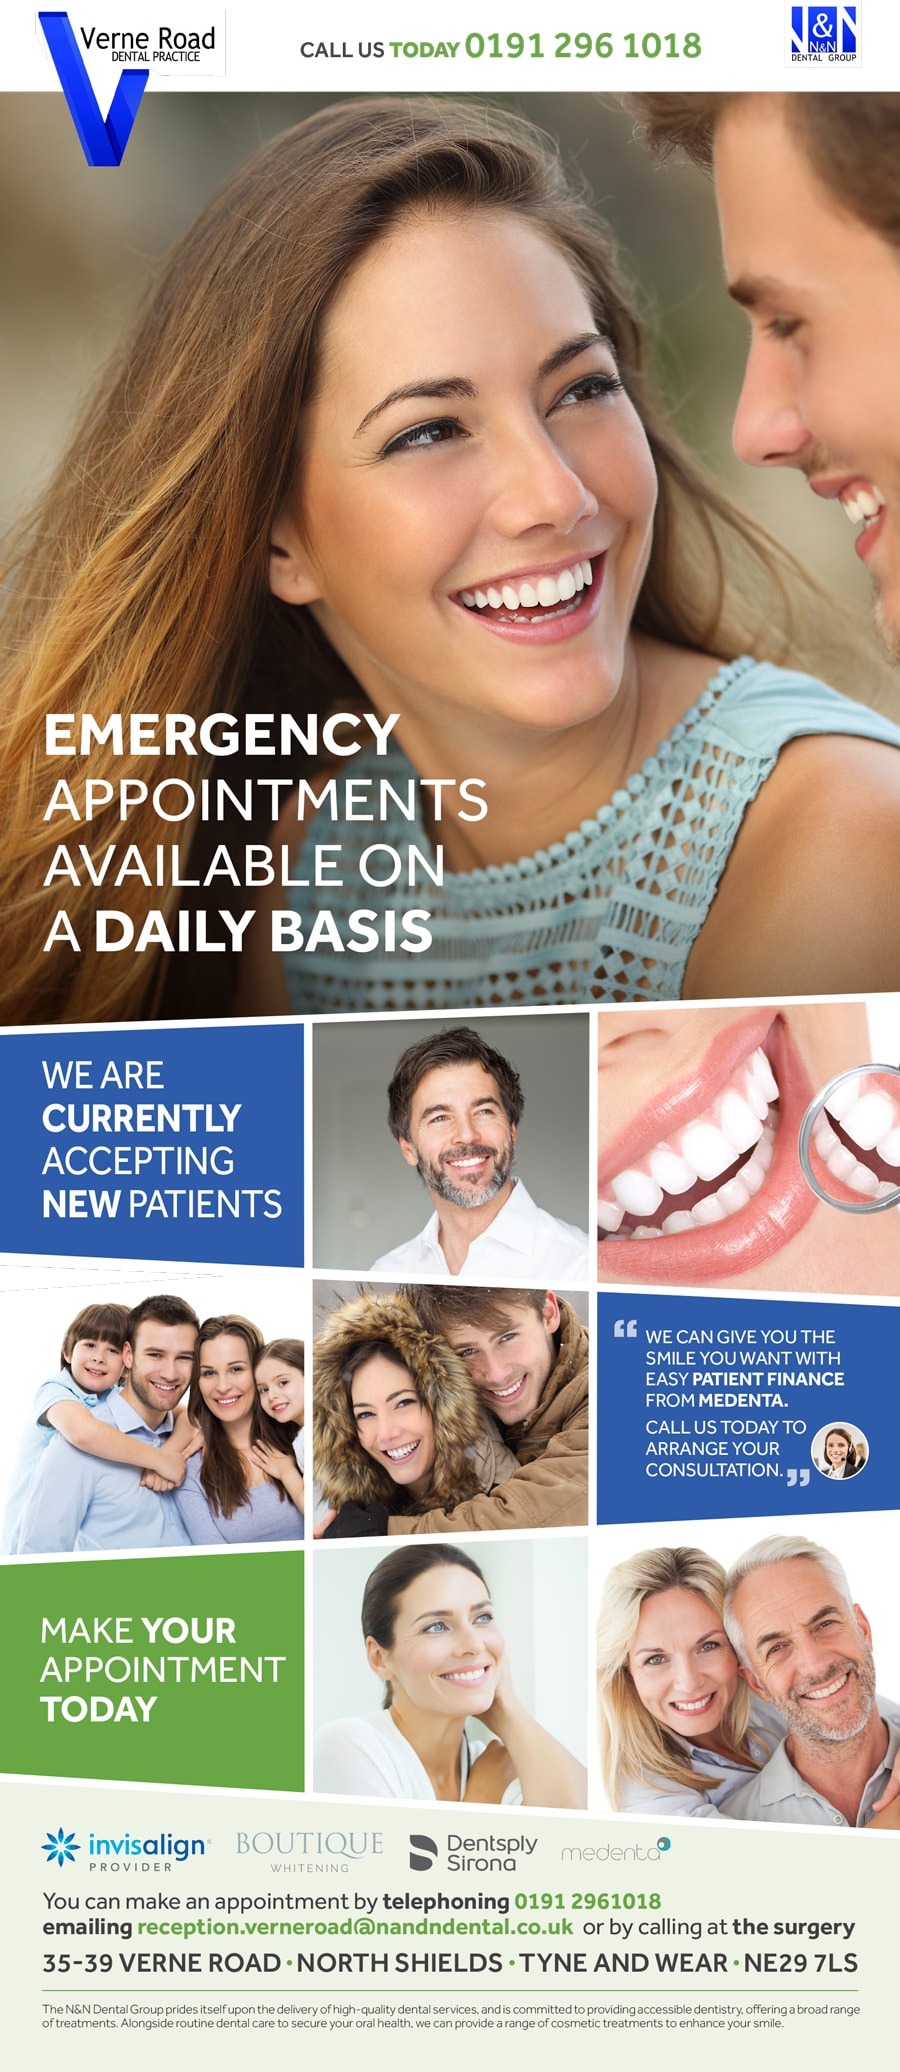 nn-dental-group-ad-1